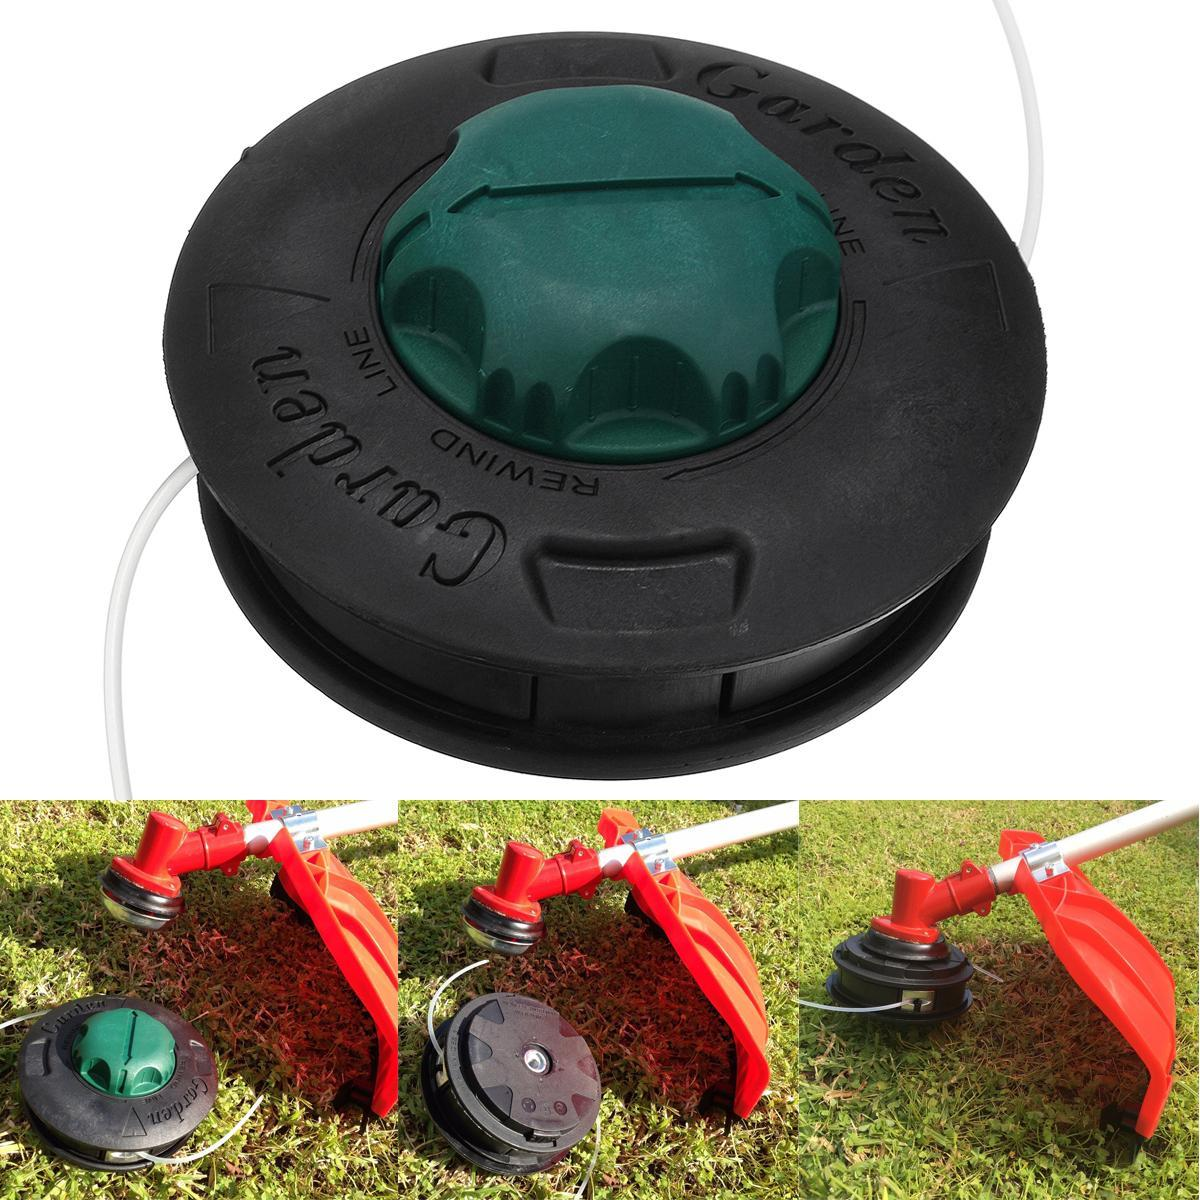 【Free Shipping + Flash Deal】Trimmer Head Whipper Twister Bump Feed Line  Snipper Brush Cutter For Brushcutter